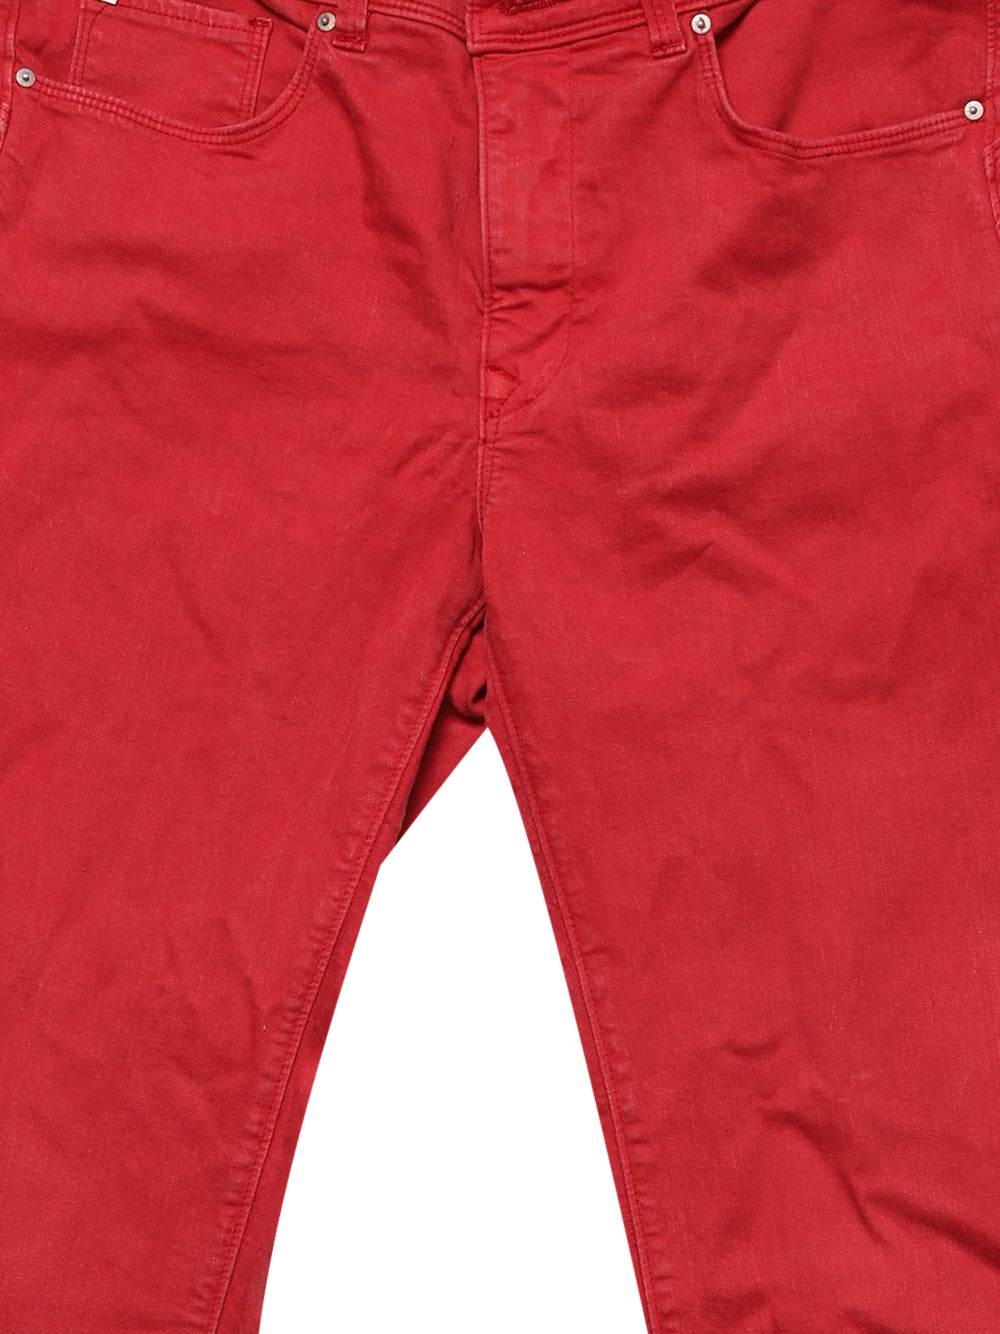 Detail photo of Preloved salsalife Red Man's trousers - size 34/XS